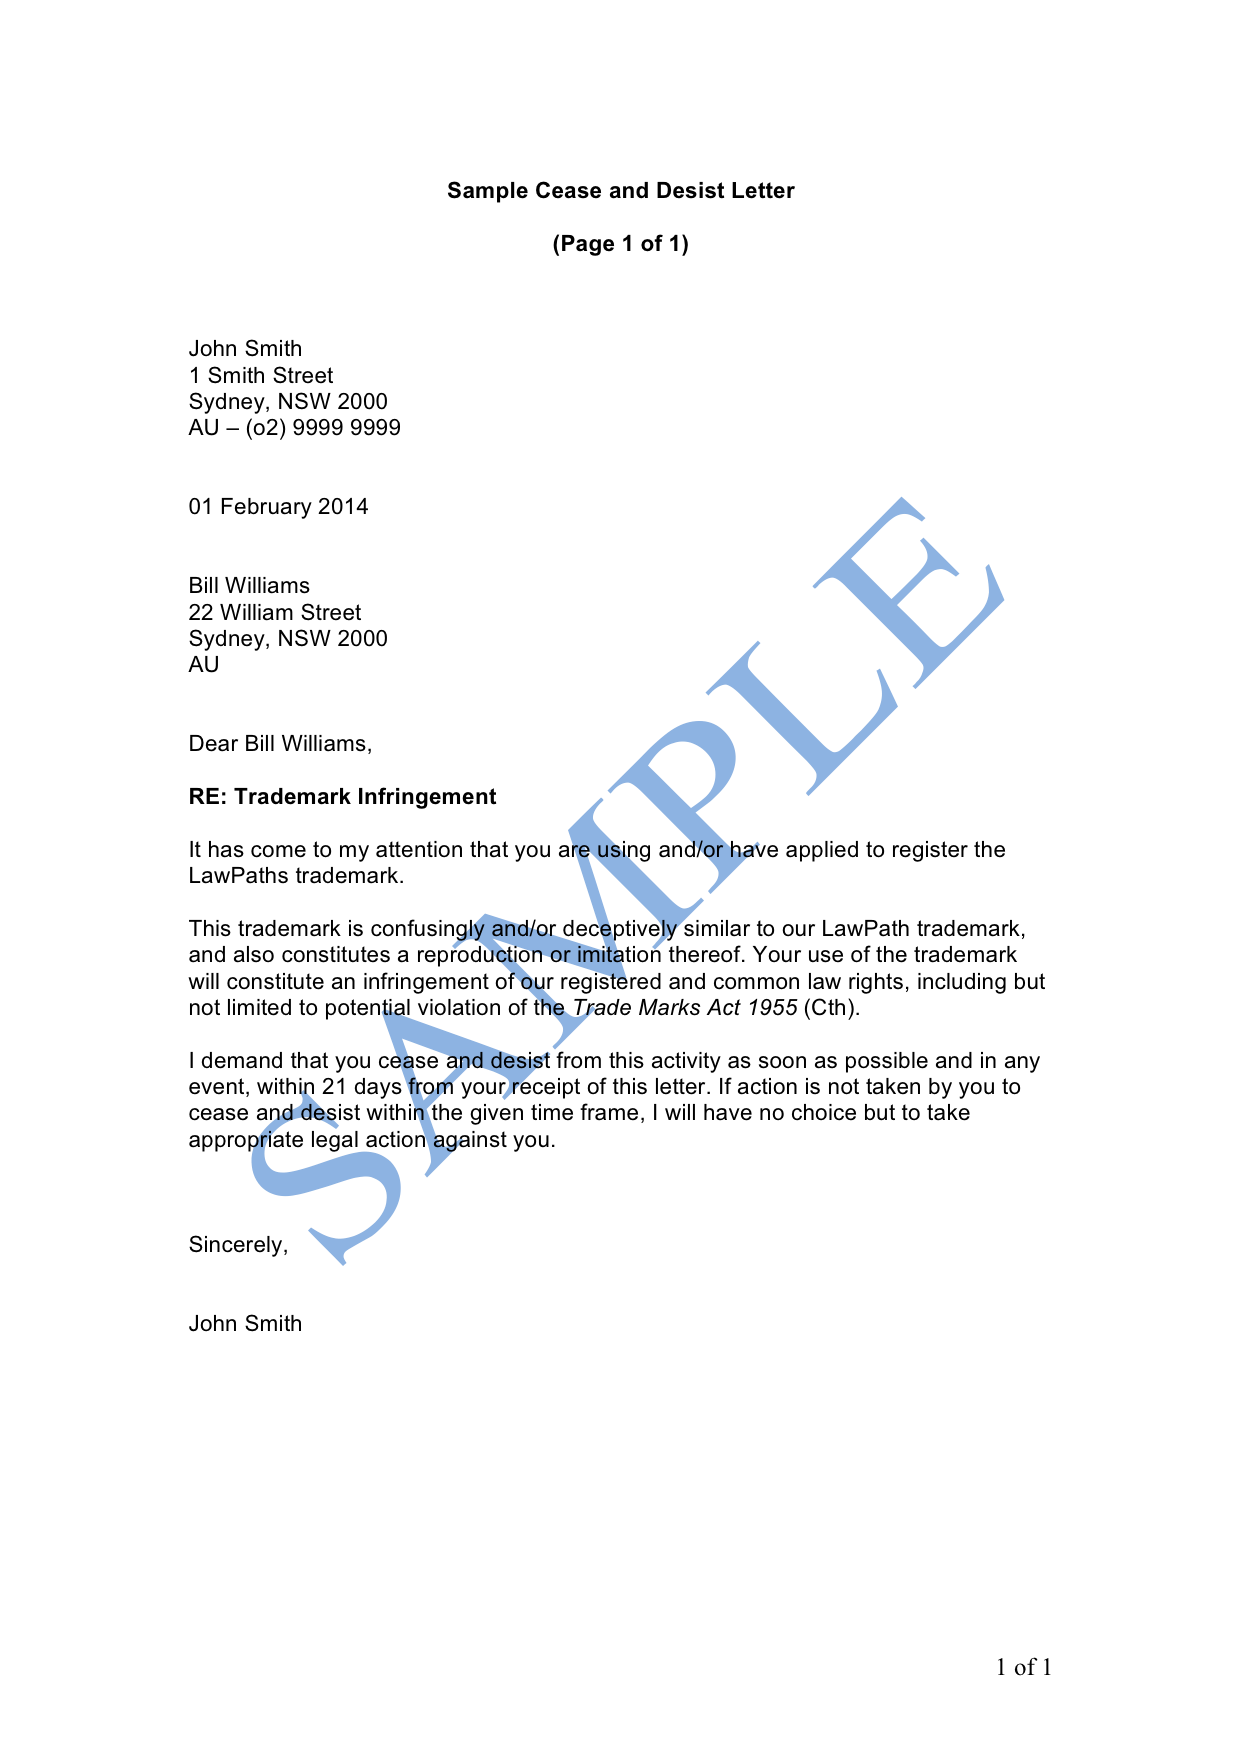 Sample legal letter of advice cease and desist letter sample how to cease and desist letter sample what does the cease and desist letter cover spiritdancerdesigns Image collections